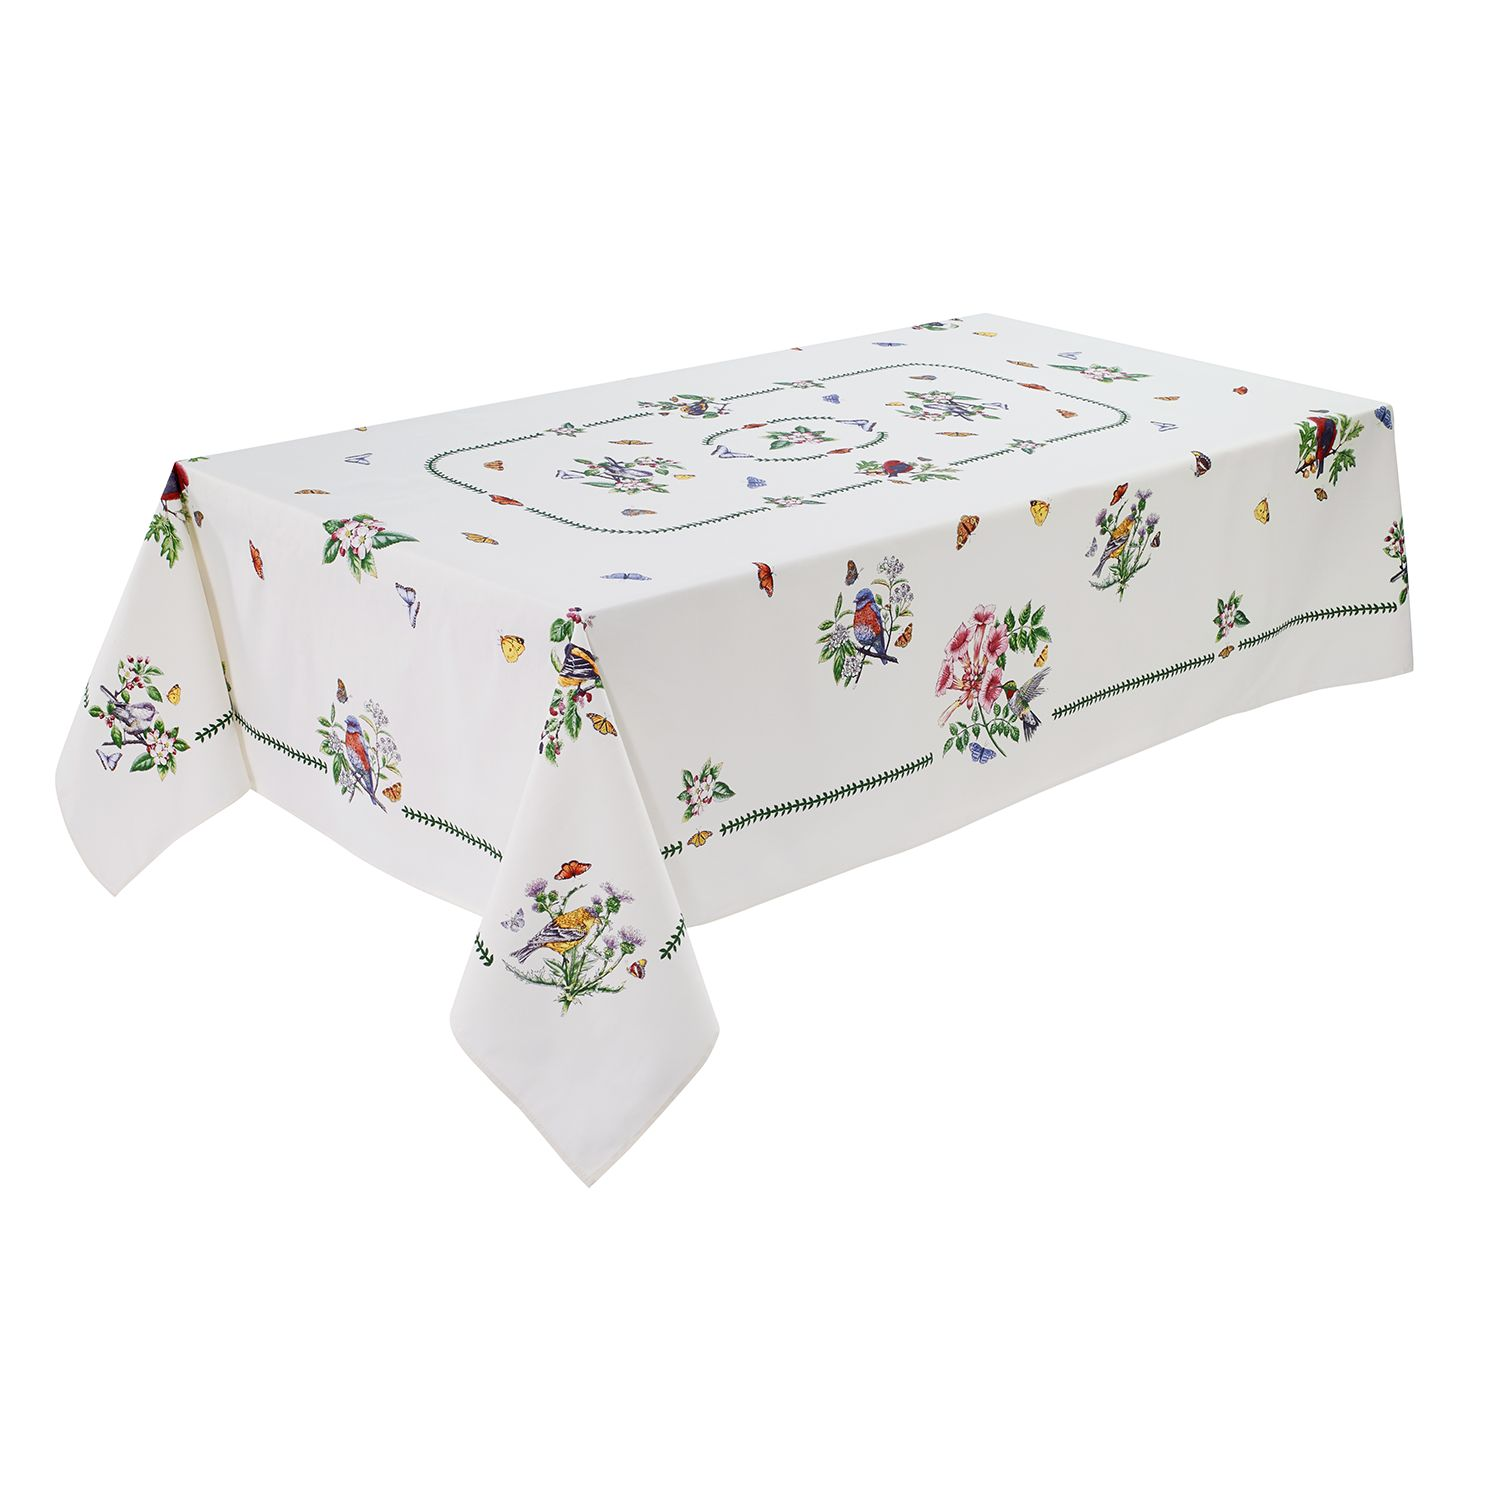 Home Furniture Diy Tablecloths Two Sizes Cream Beige Floral Design Large Oval Rectangular Tablecloth Mtmstudioclub Com